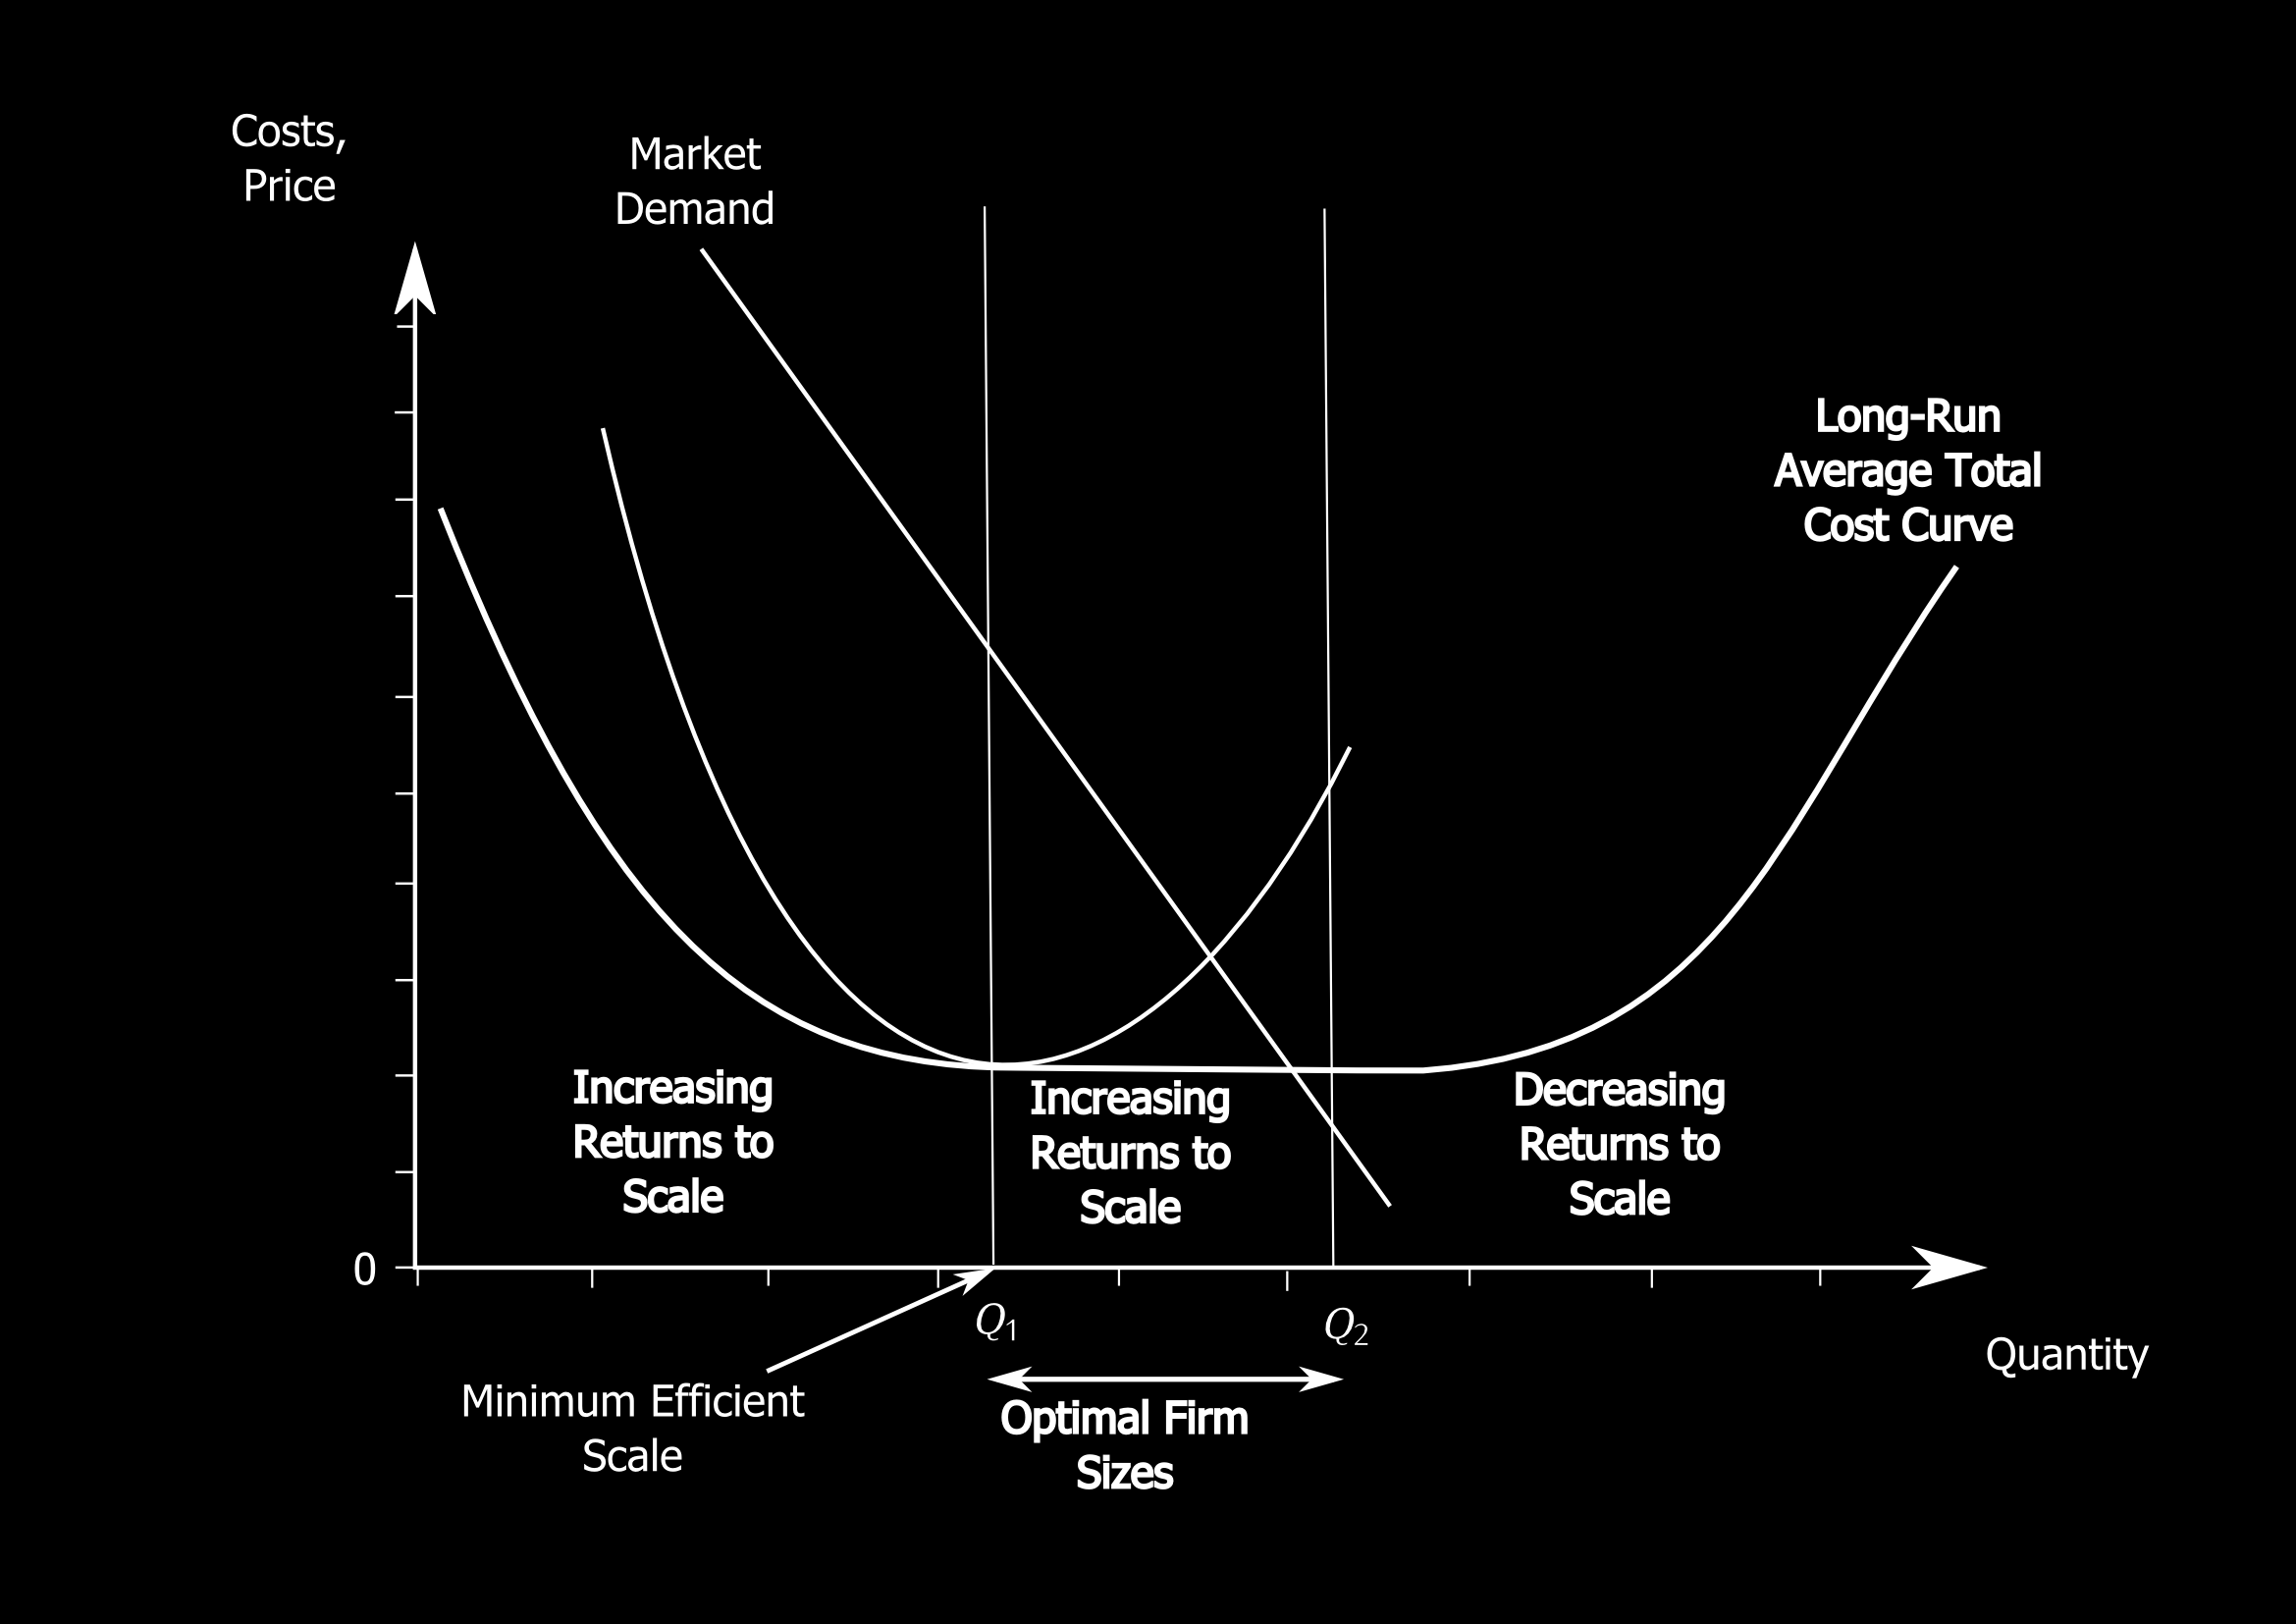 Monopolies Economies of Scale A natural monopoly will emerge if the firm s LRATC curve is declining (i.e., there are economies of scale) over the range of outputs likely demanded for the entire output.